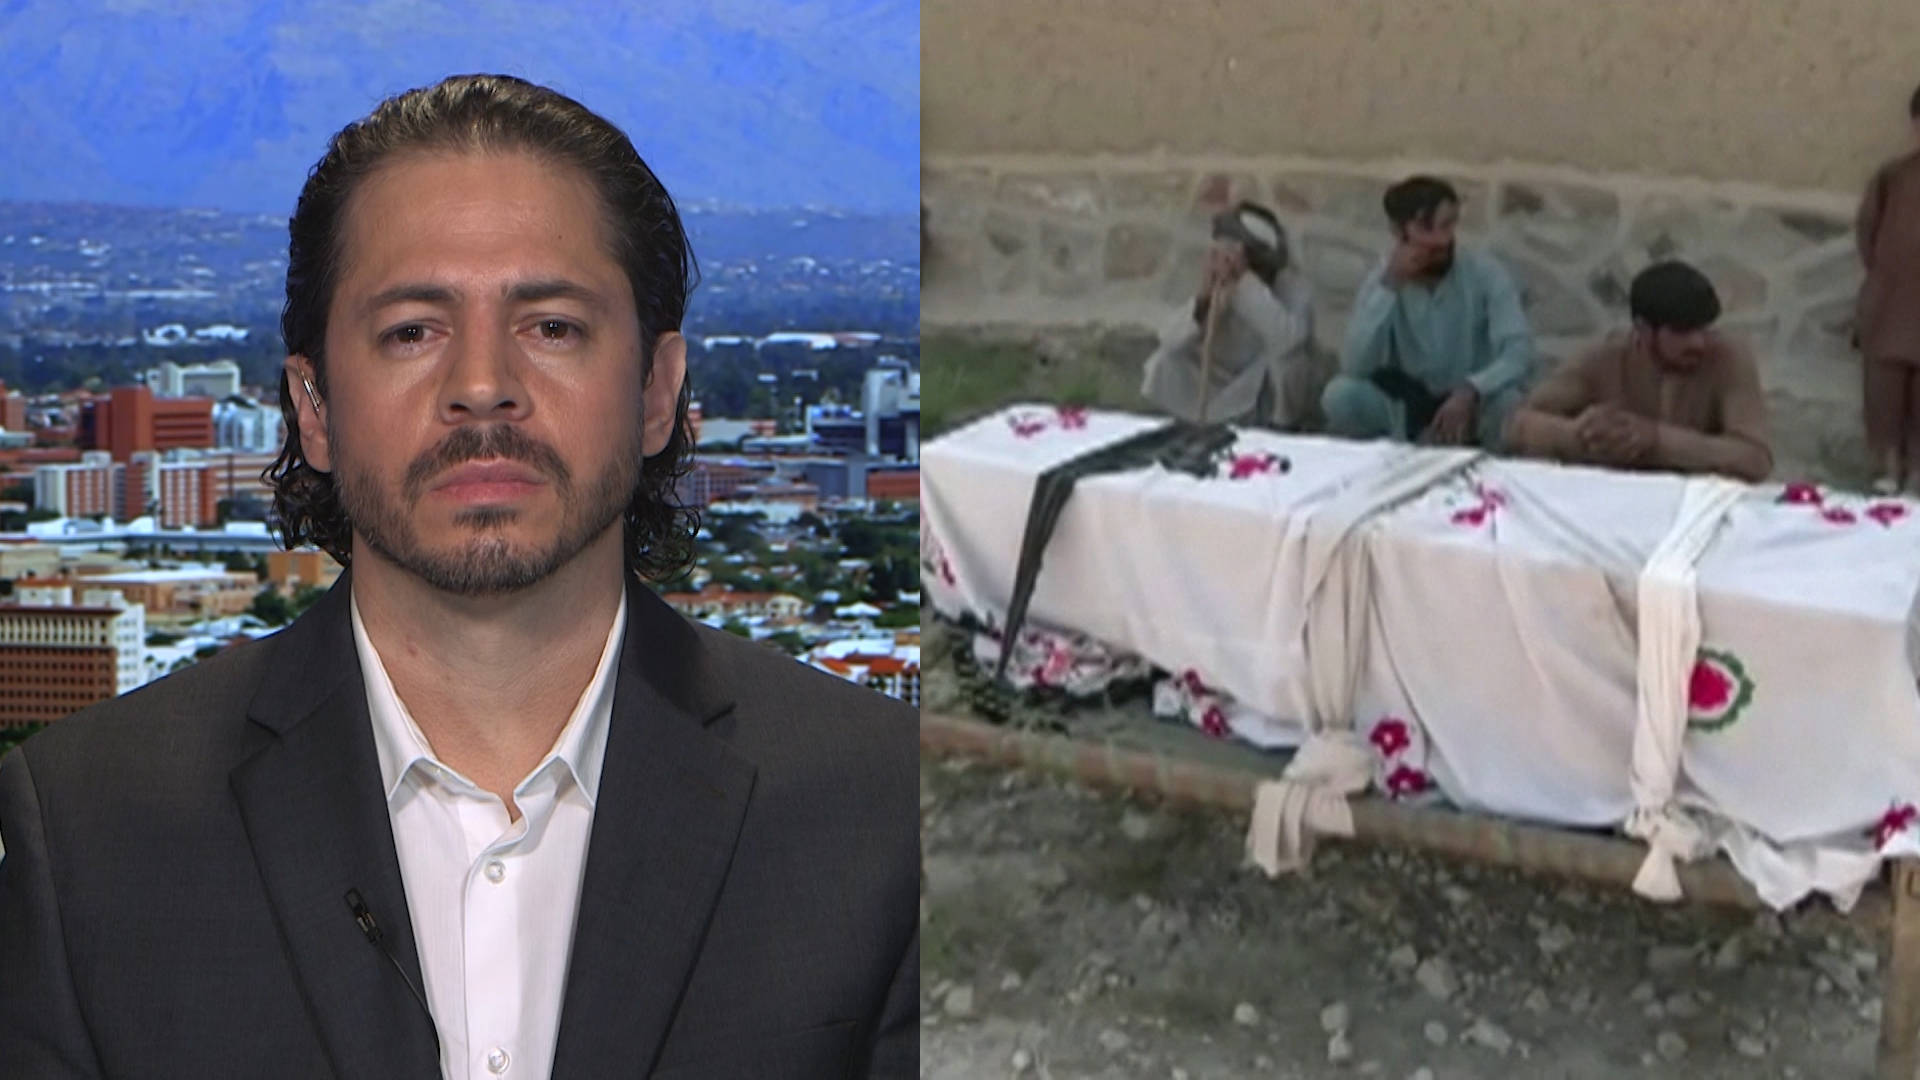 You are currently viewing A CIA Drone Analyst Apologizes to the People of Afghanistan